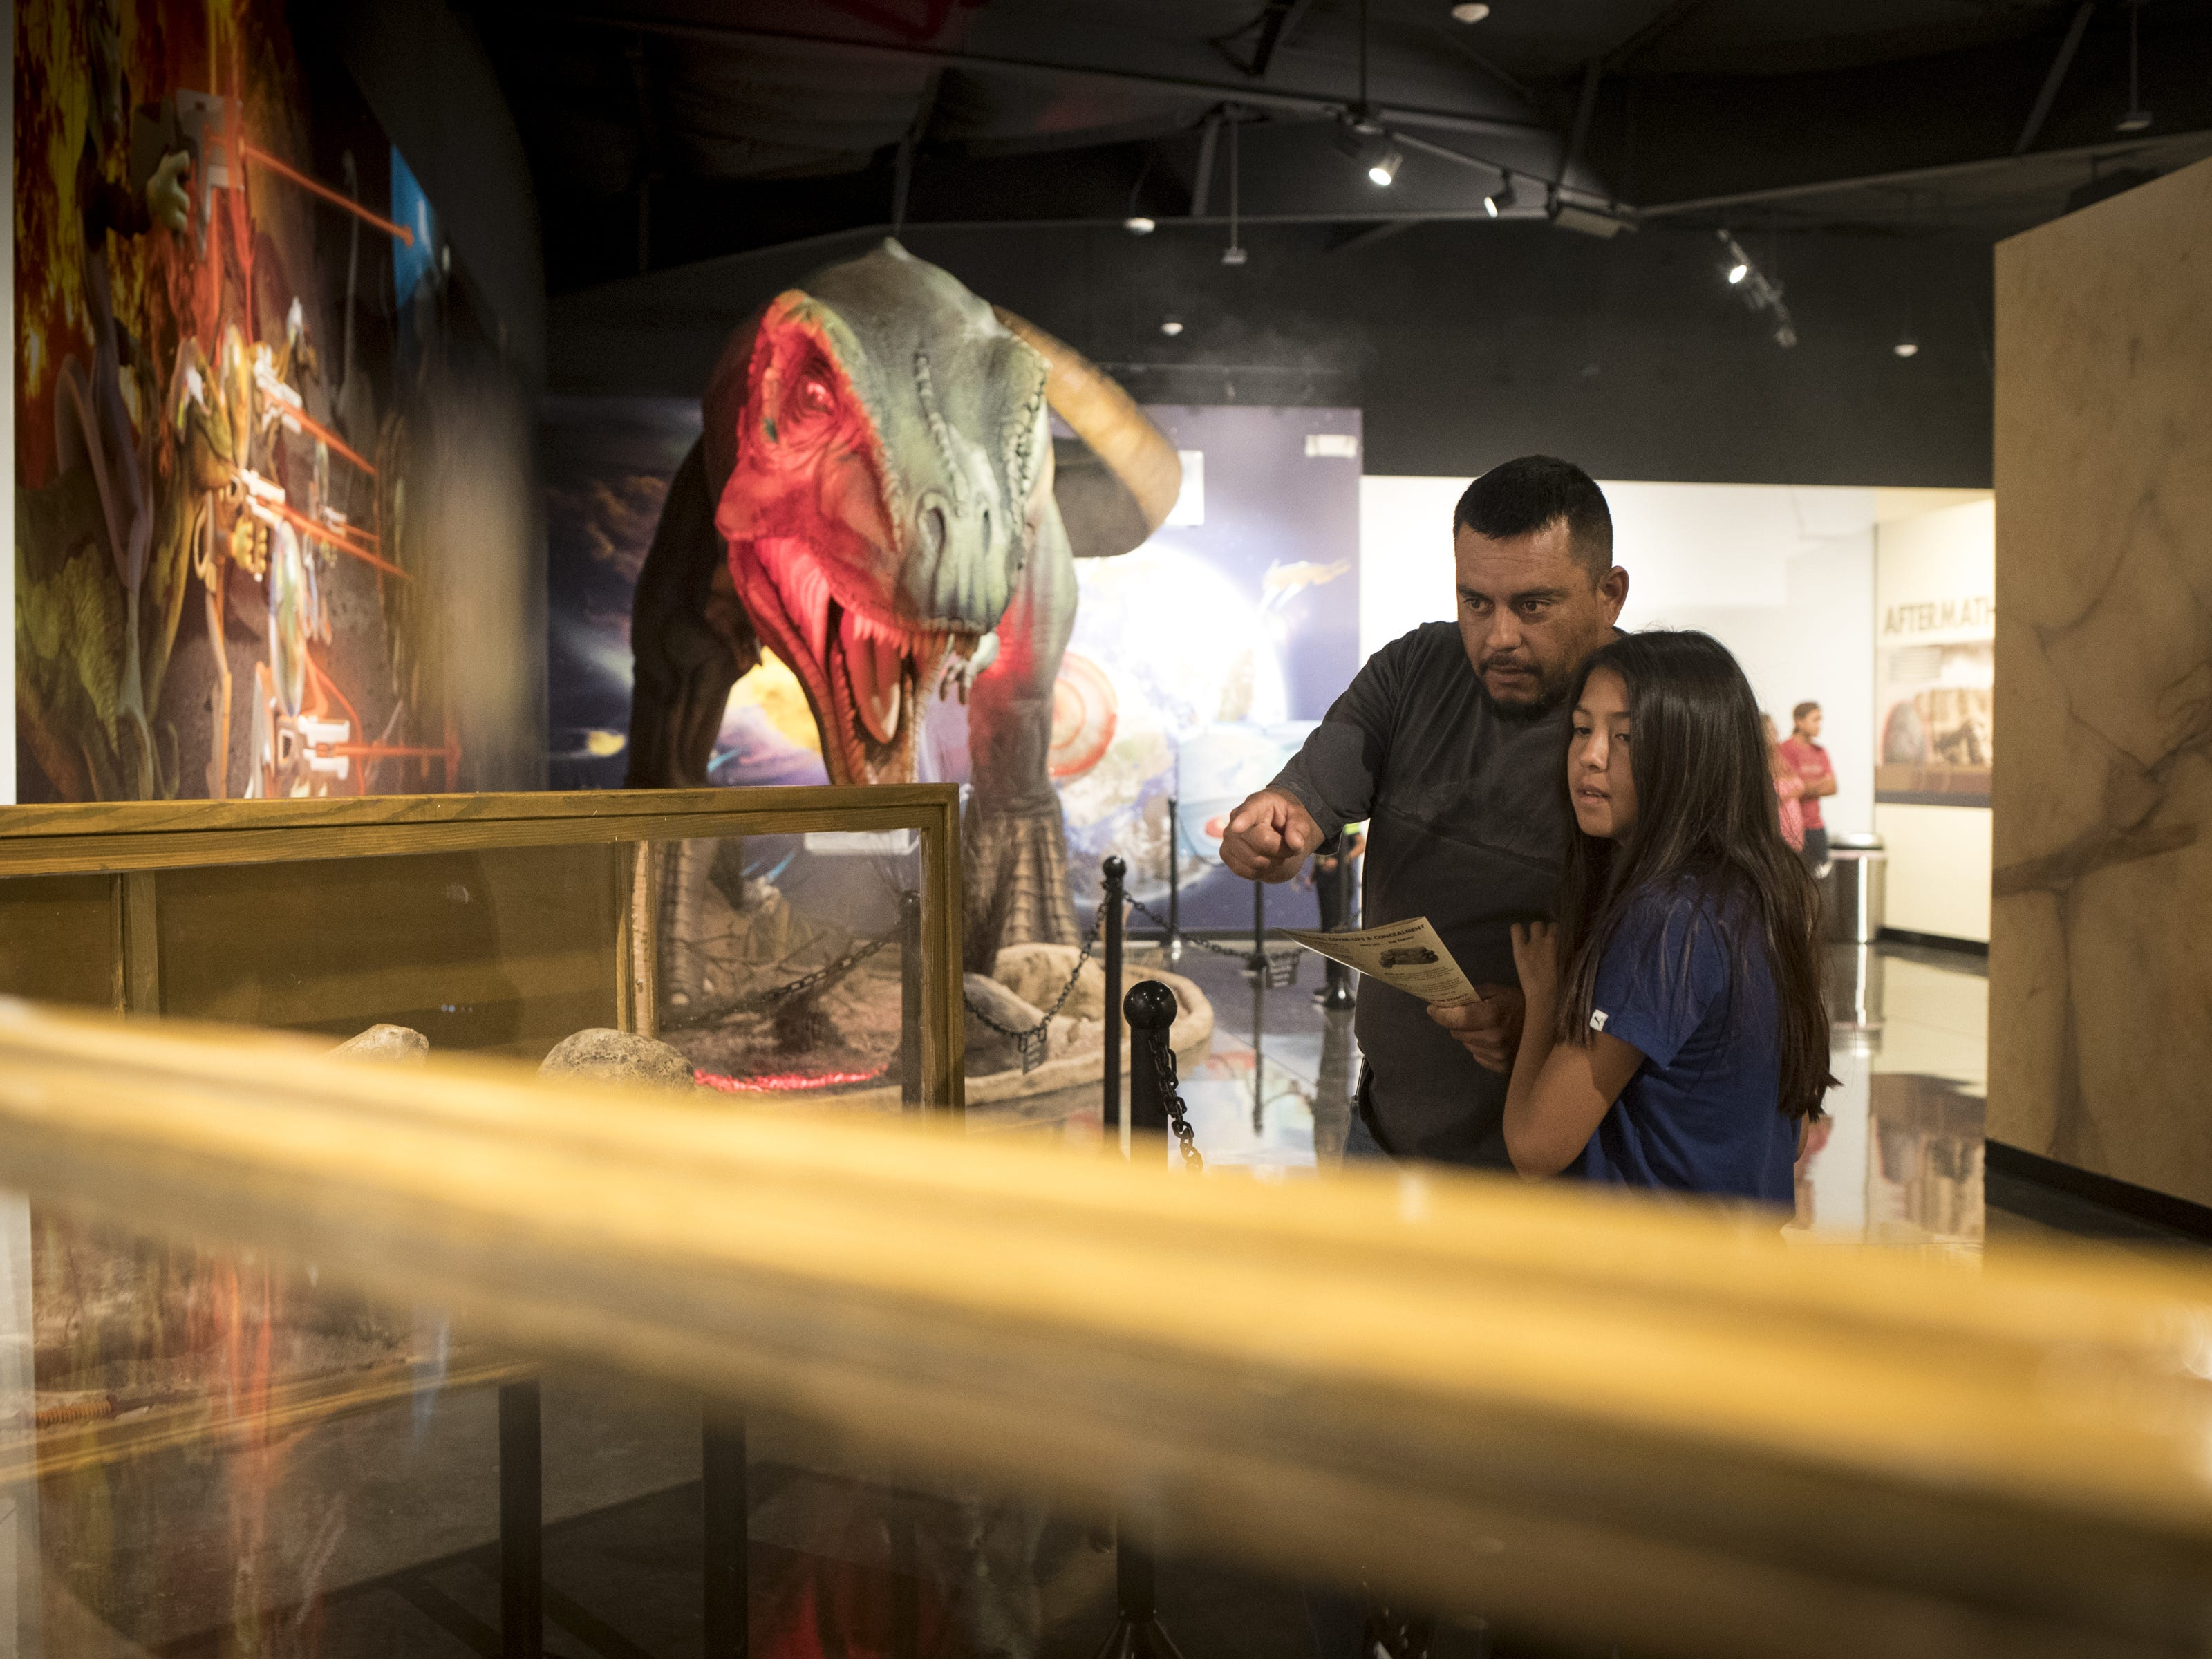 Gilbert Morales (left) and his daughter, Cynthia (11) view dinosaur bones, September 11, 2018, in the museum at the Bowlin Travel Center, east of Benson, Arizona.